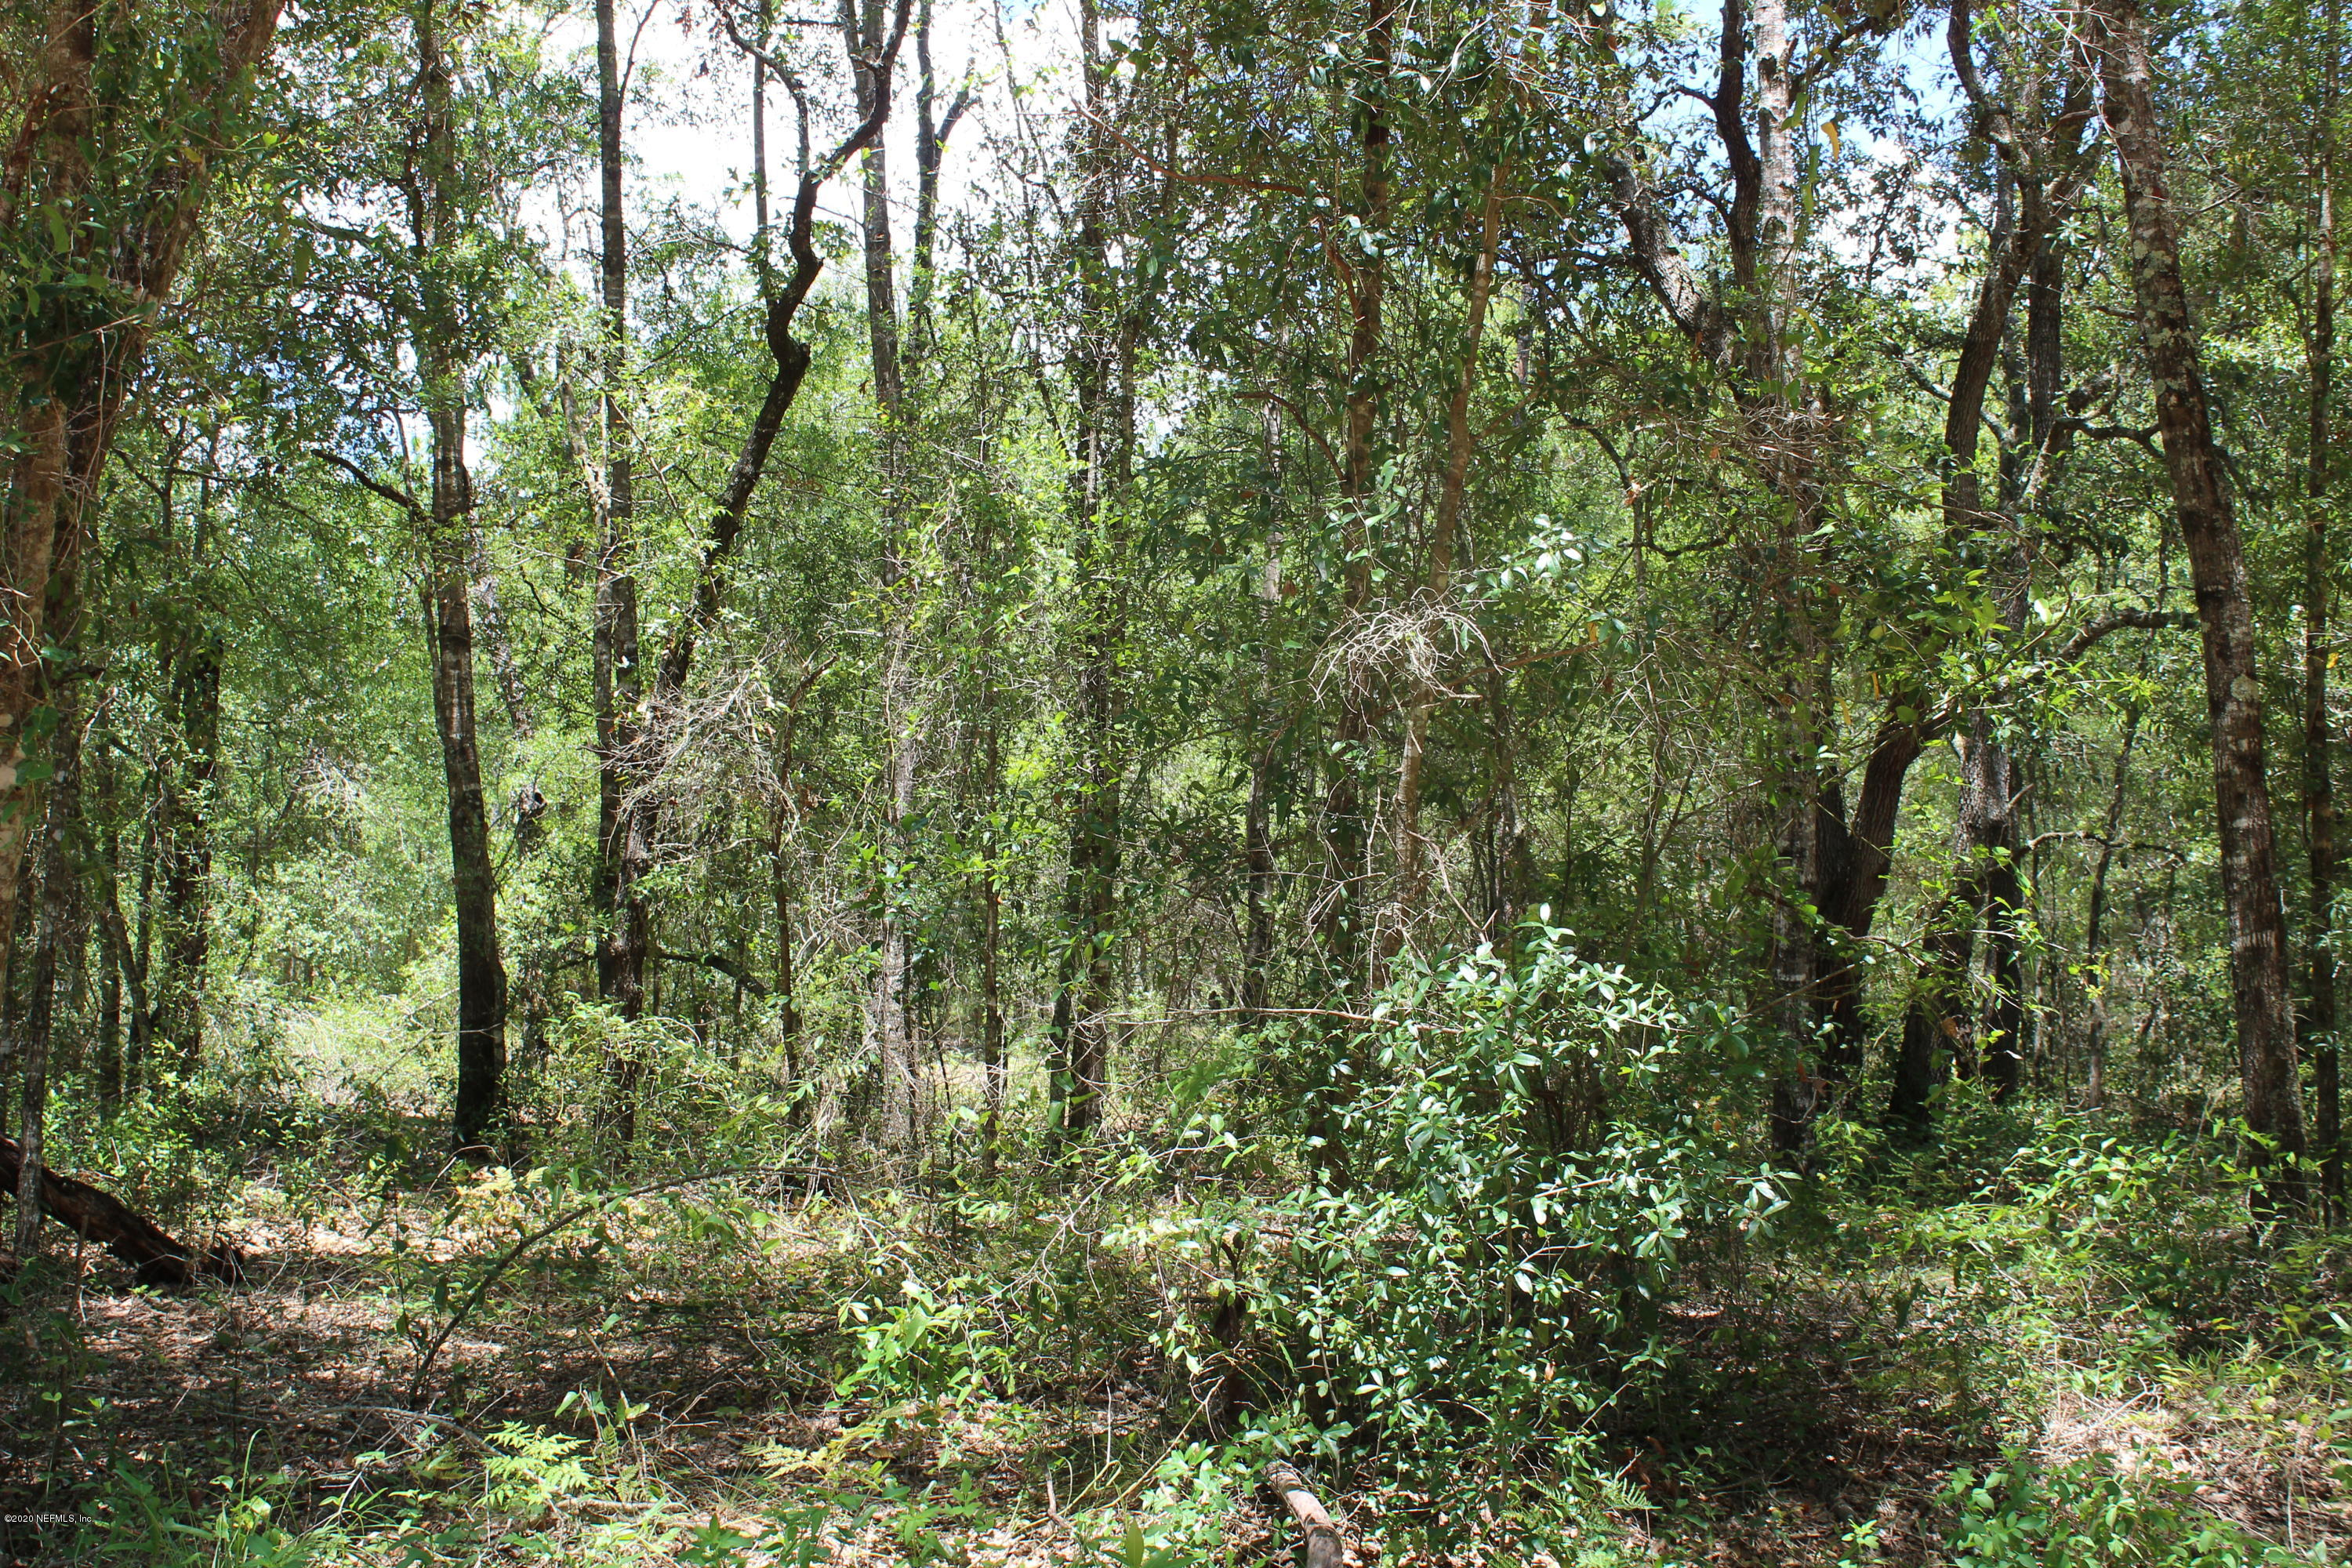 0 COUNTY ROAD 214, KEYSTONE HEIGHTS, FLORIDA 32656, ,Vacant land,For sale,COUNTY ROAD 214,1065349